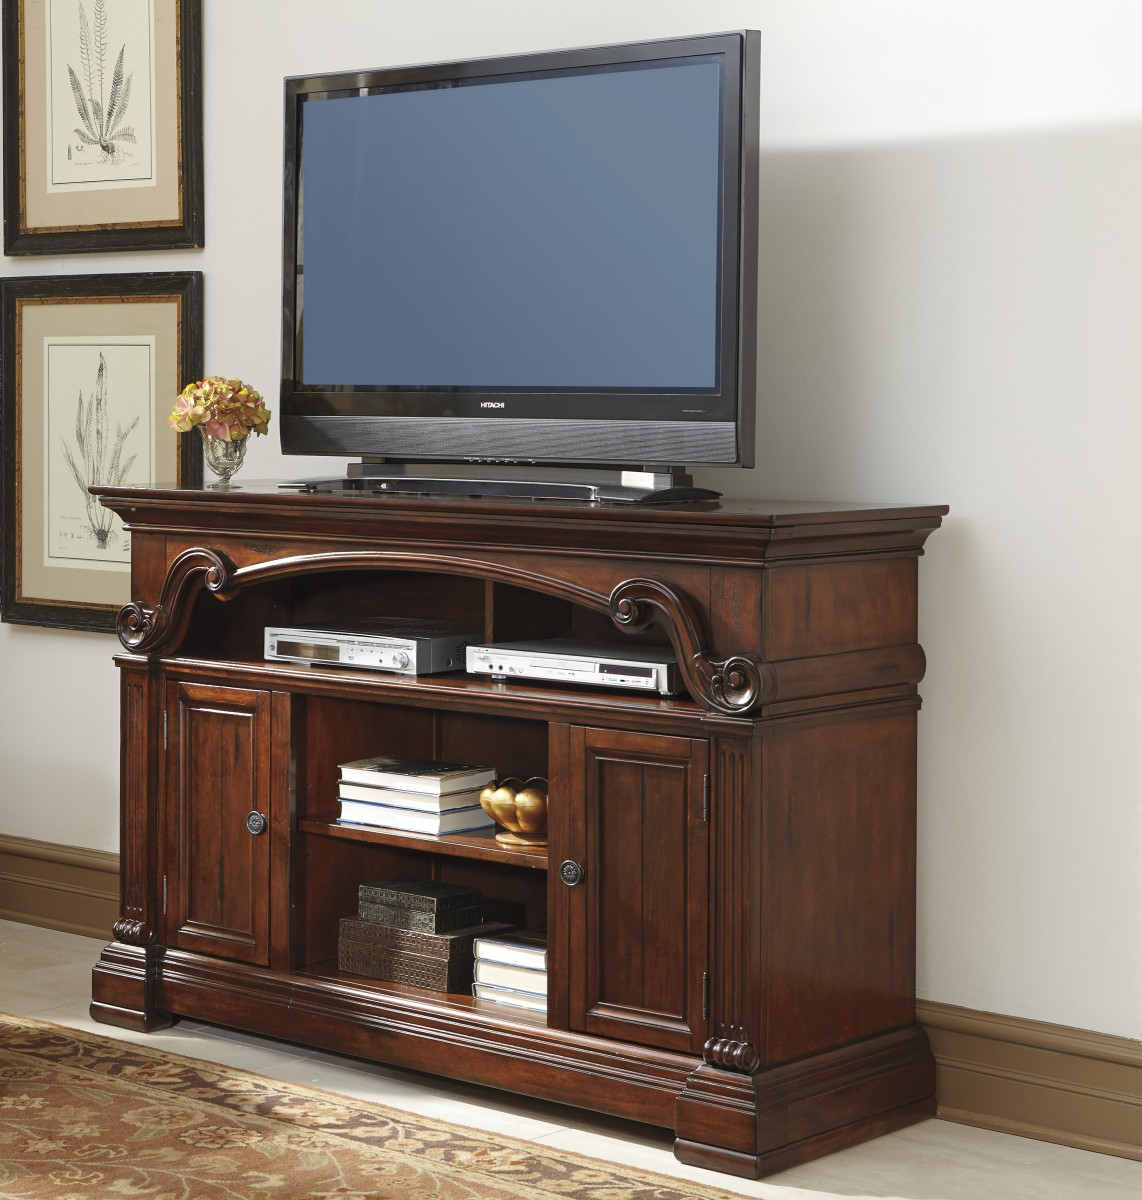 W669 68 Signature by Ashley Alymere LG TV Stand with